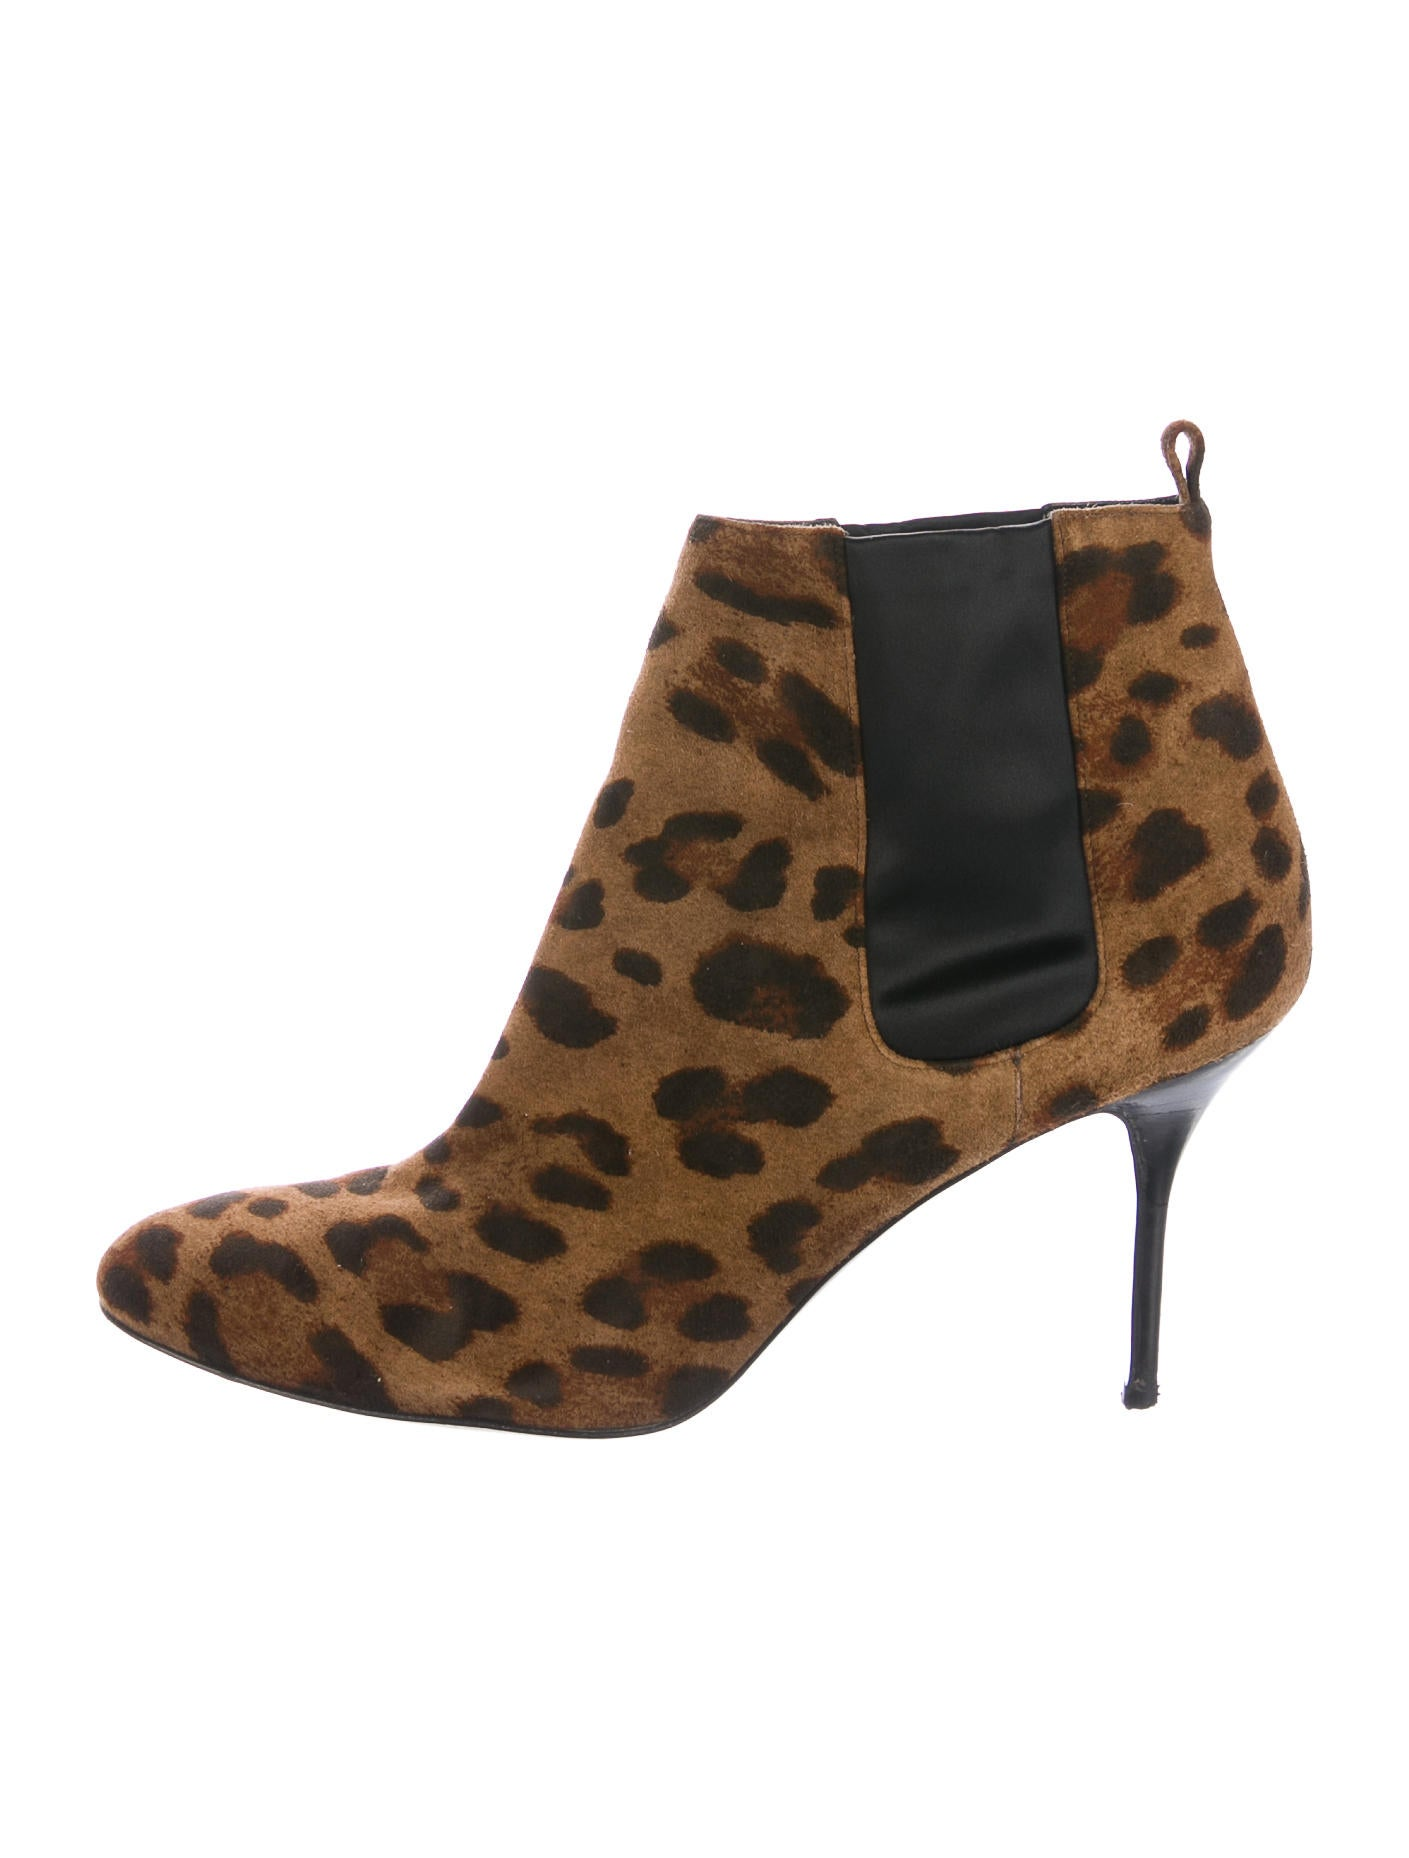 Pierre Hardy Printed Suede Ankle Boots - Shoes